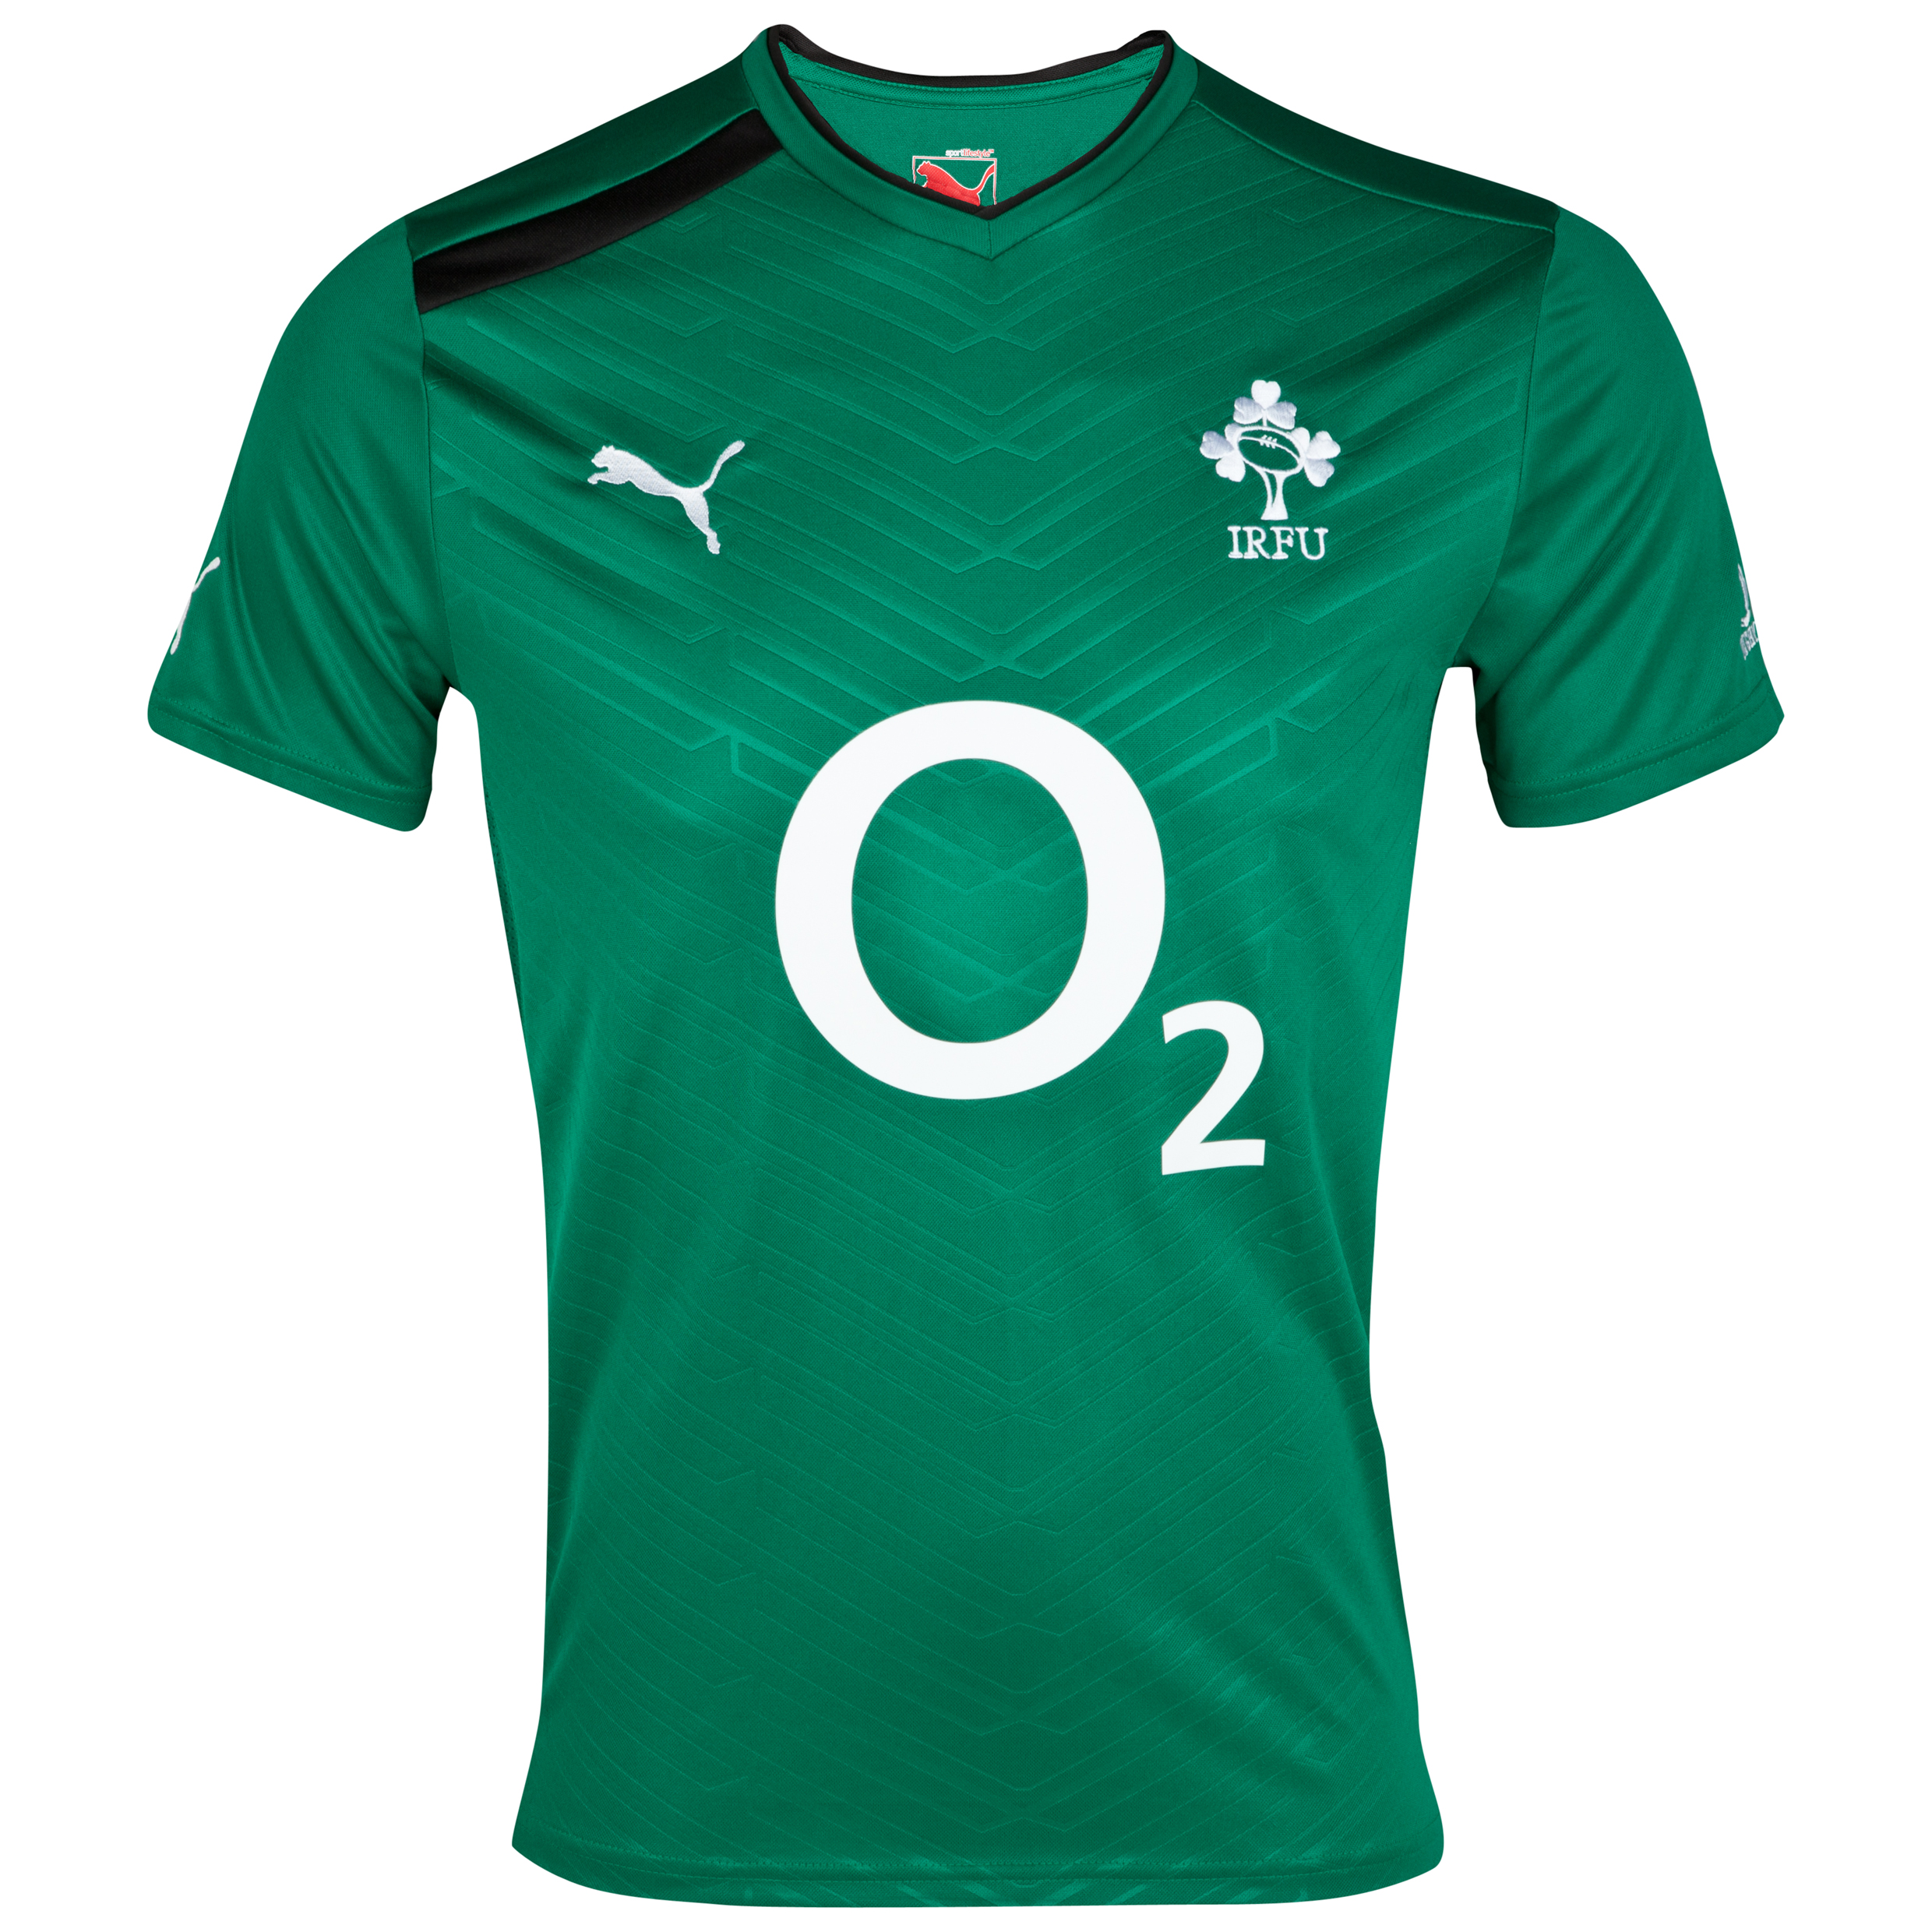 Ireland Rugby Workout T-Shirt - Green/Black